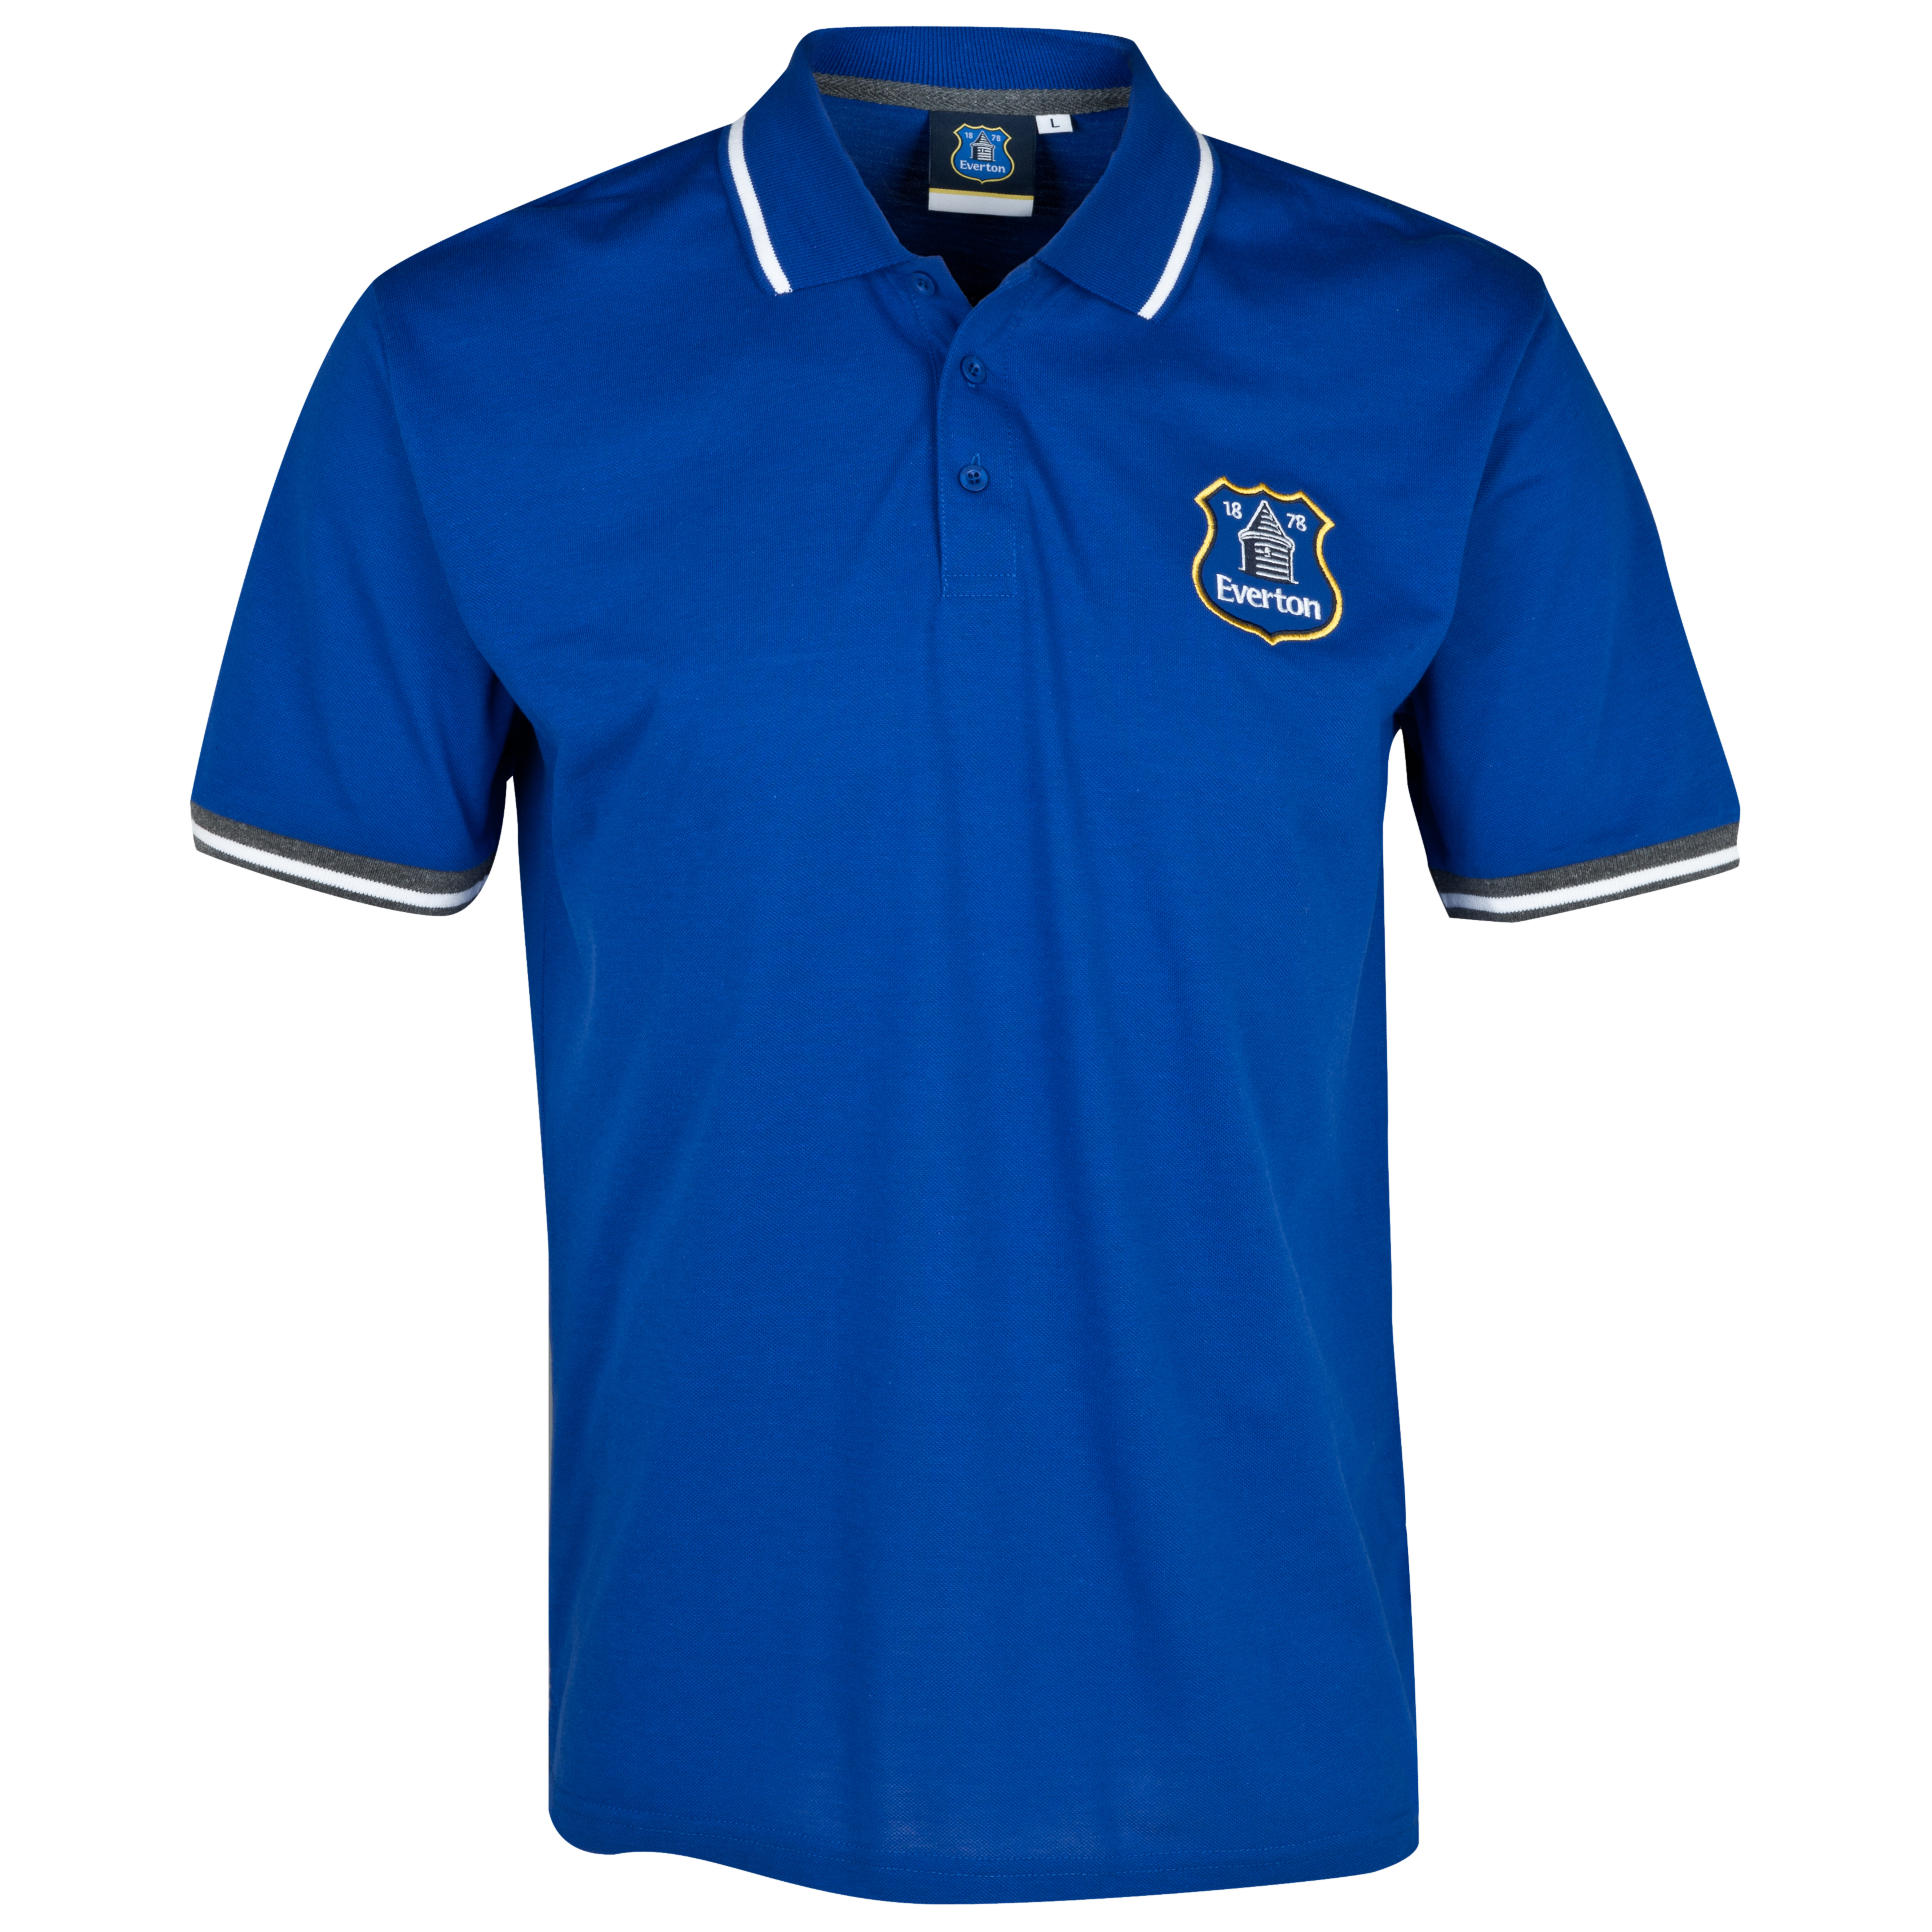 Everton Essentials Stadia Polo Shirt - Older Boys Royal Blue